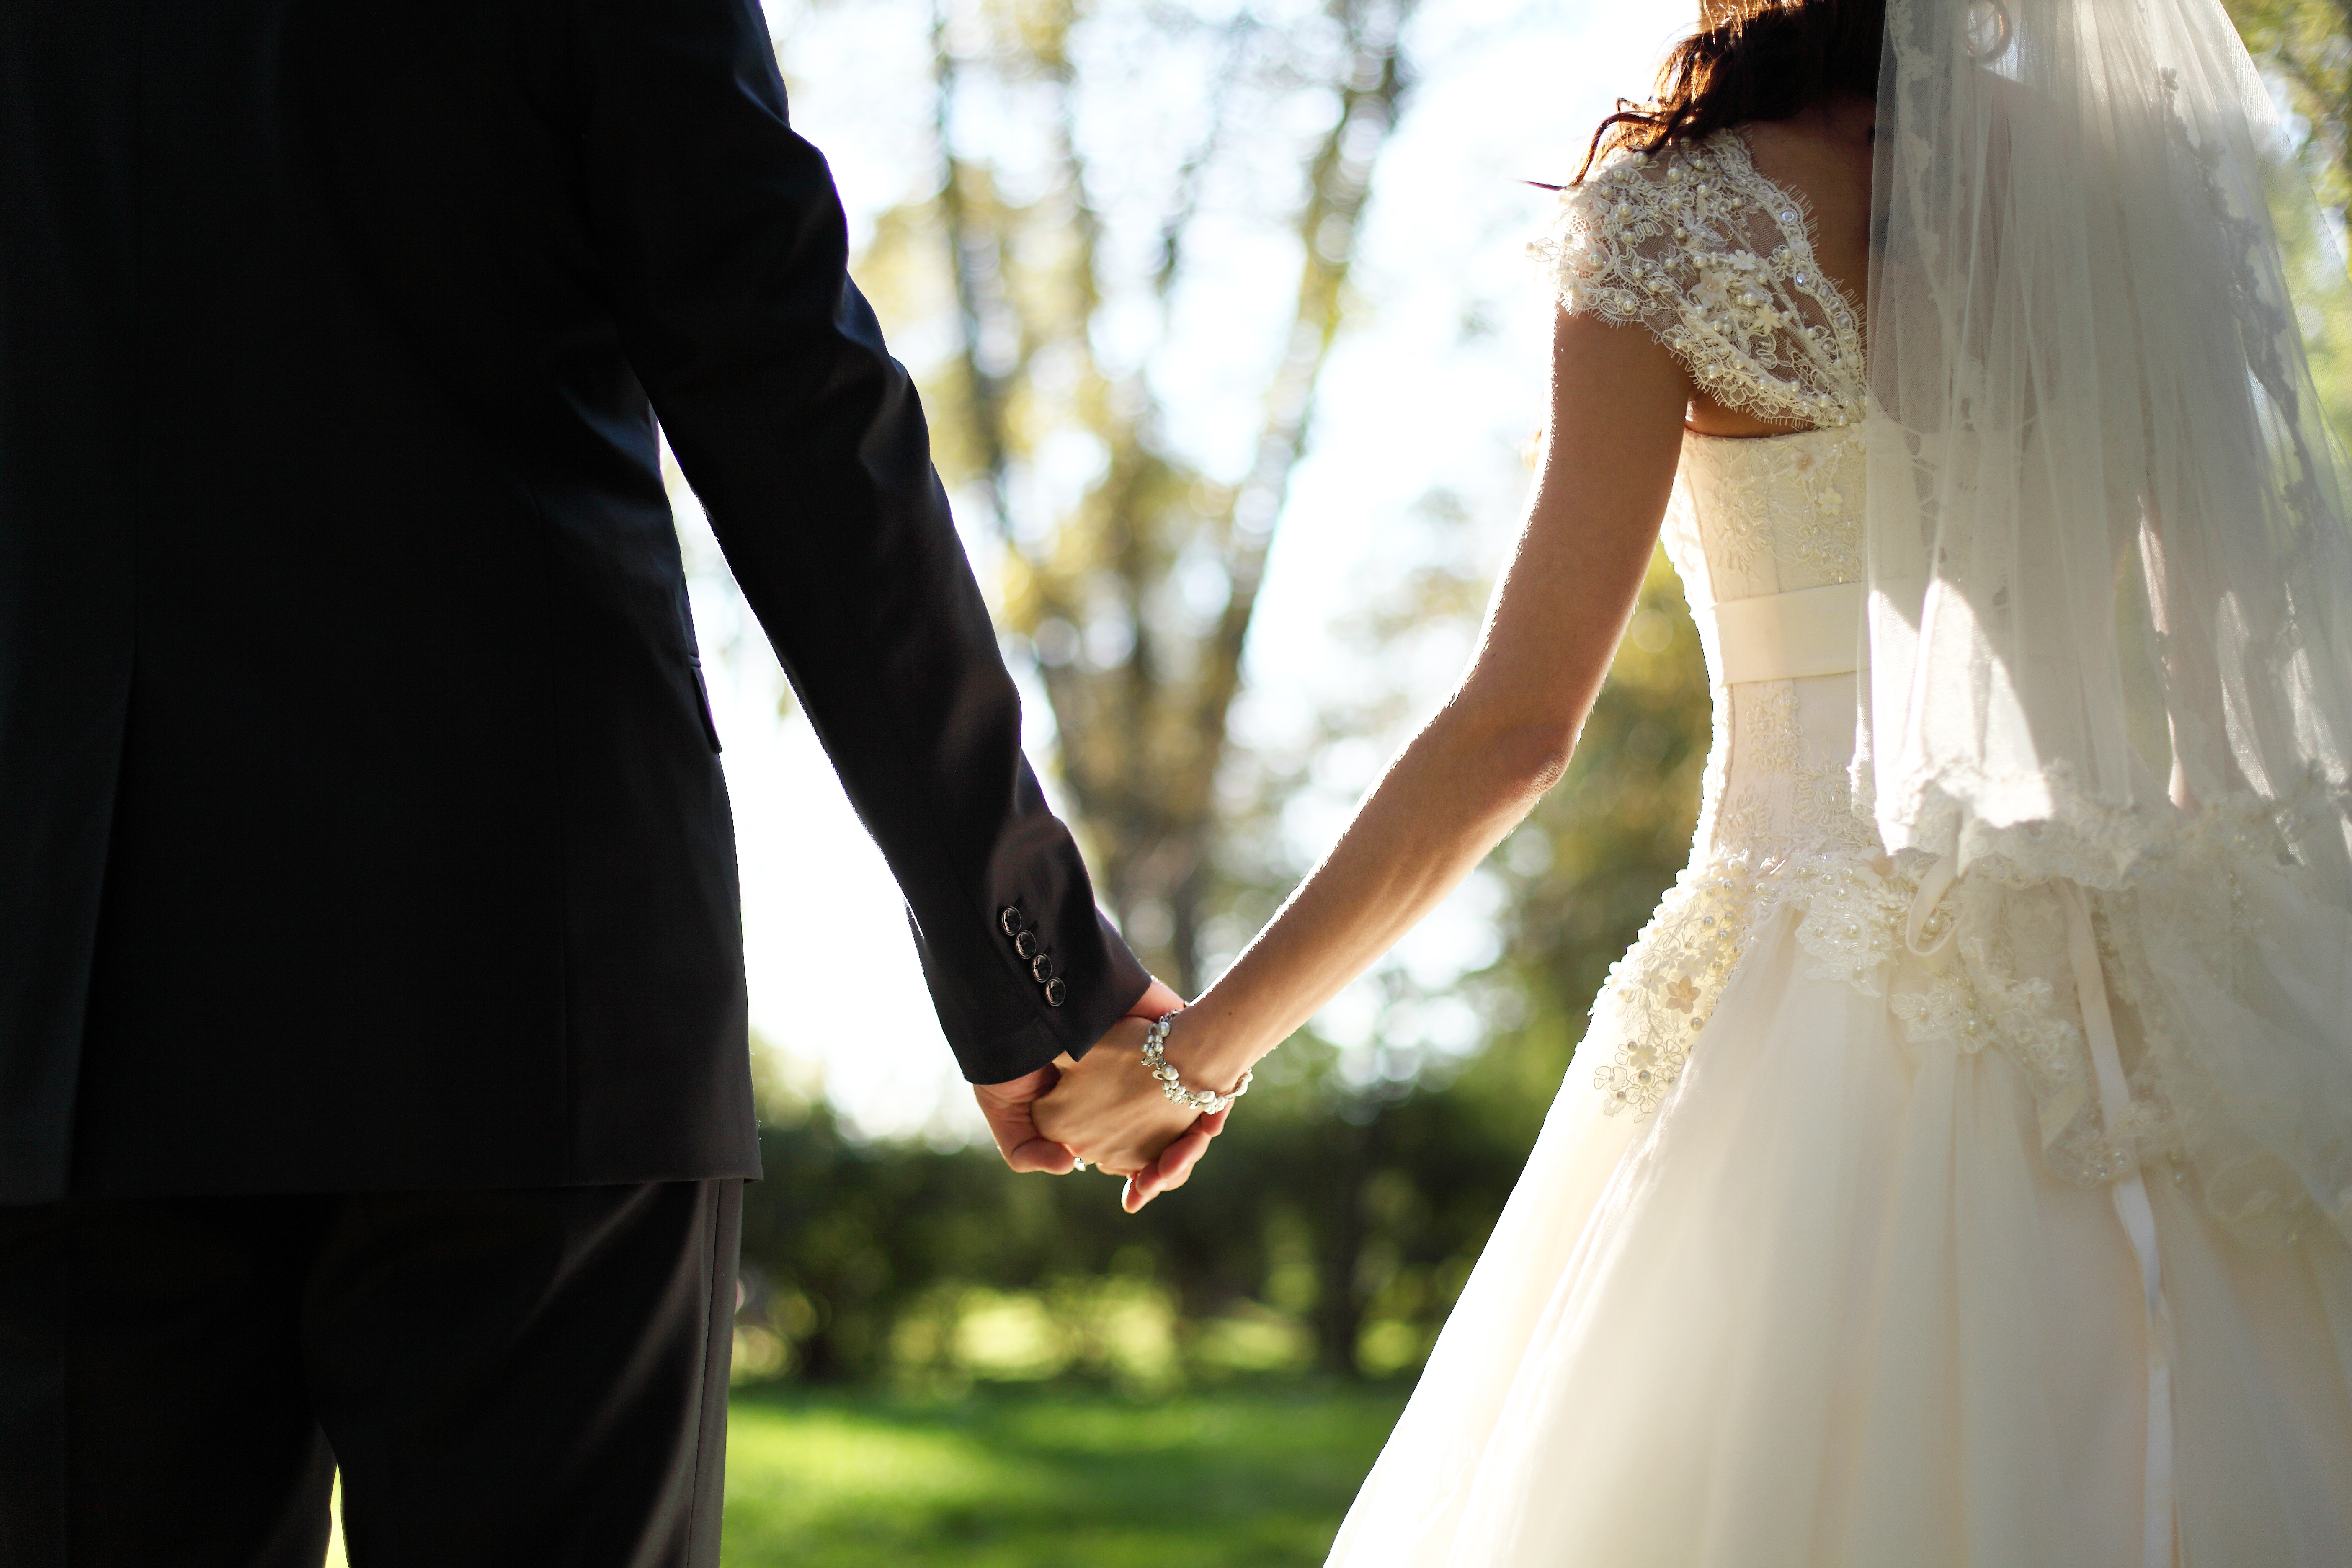 Why do marriages succeed or fail?